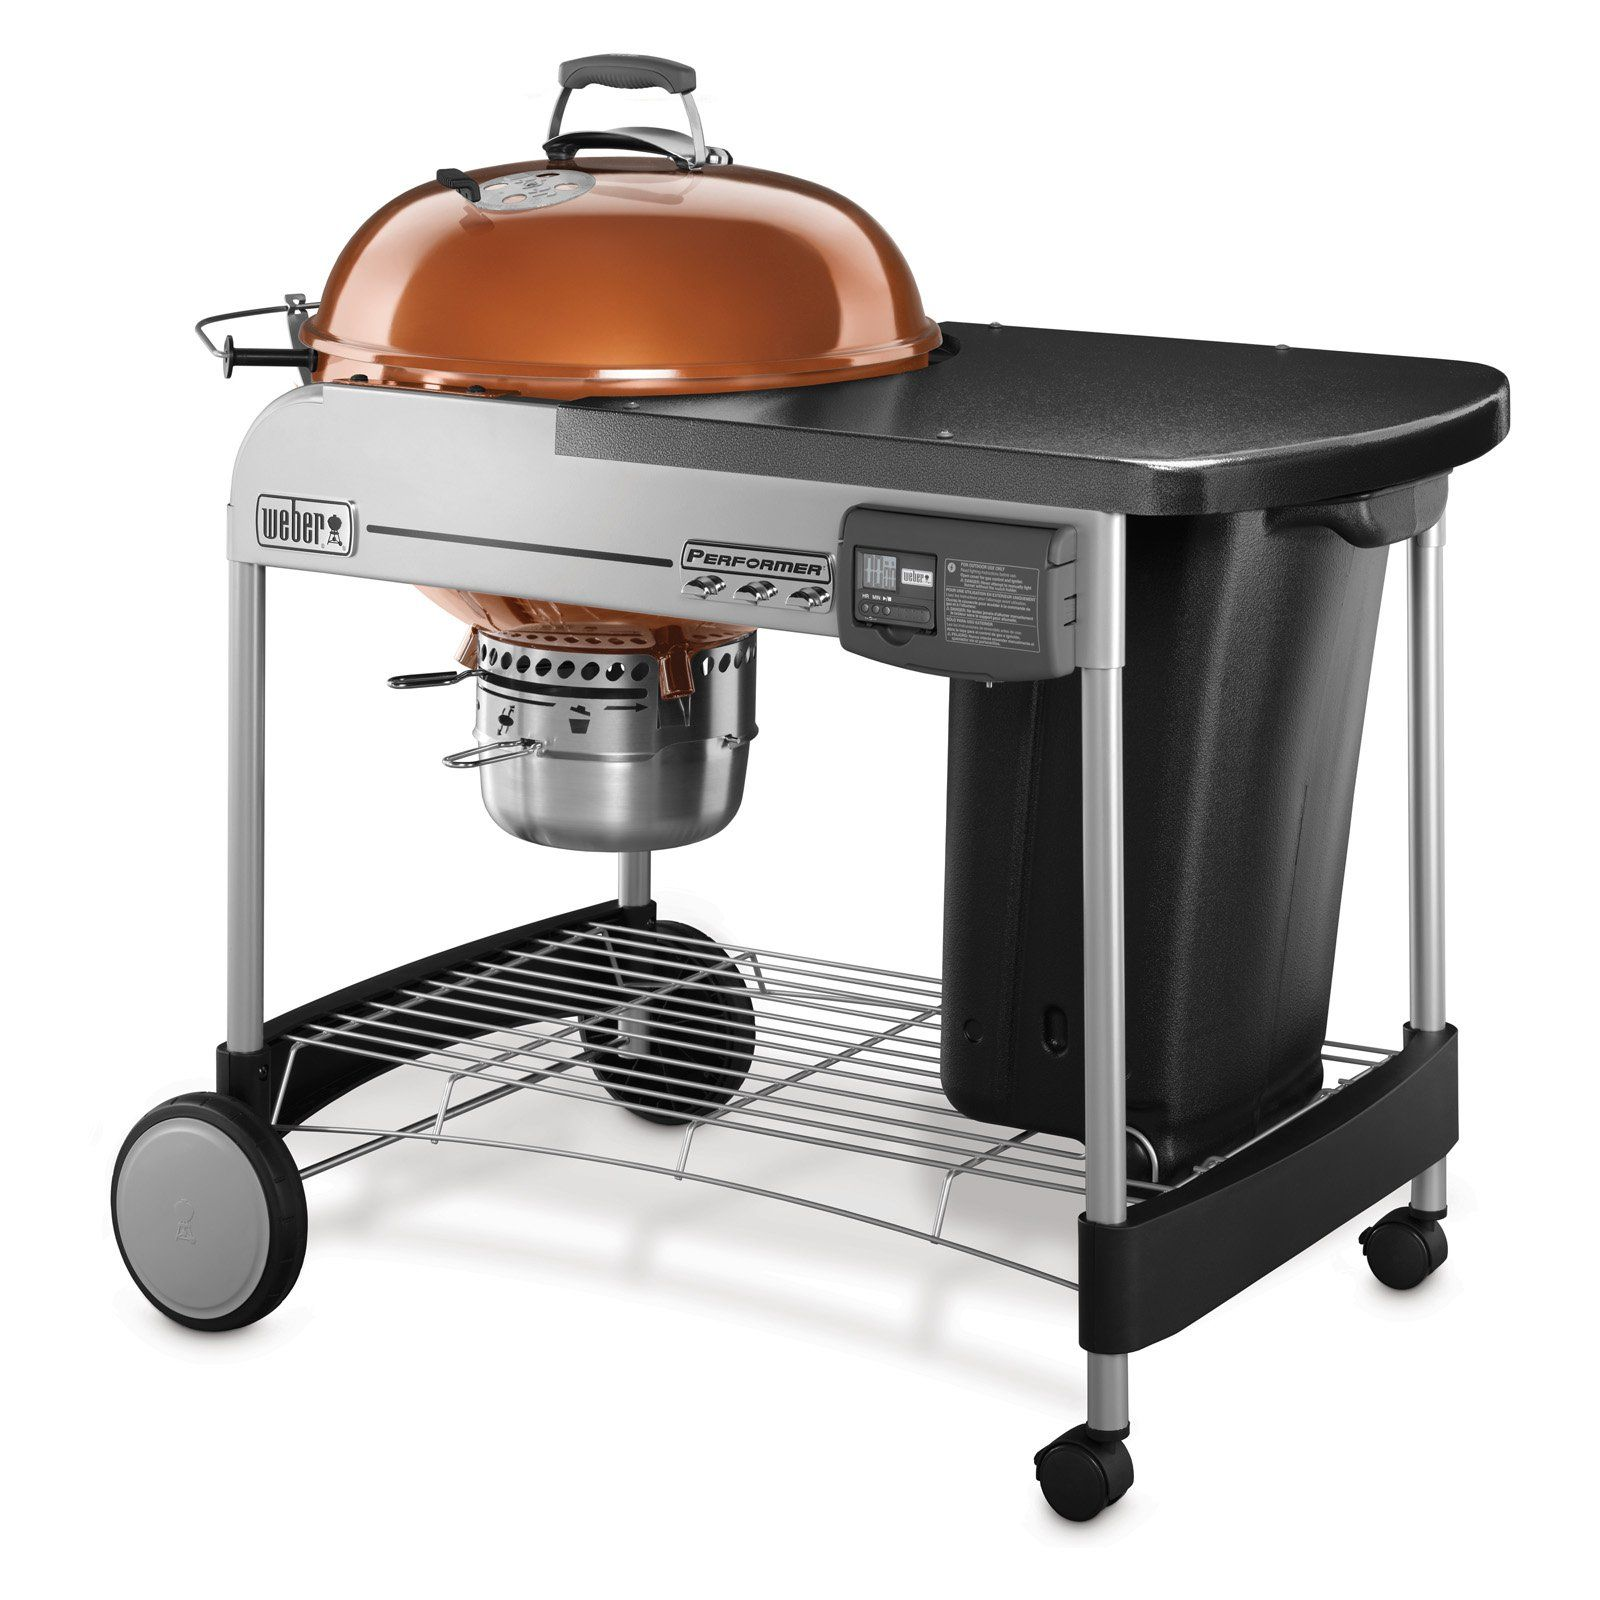 Weber Performer Deluxe Charcoal Grill 22 In Copper Charcoal Grill Kettle Grills Weber Charcoal Grill